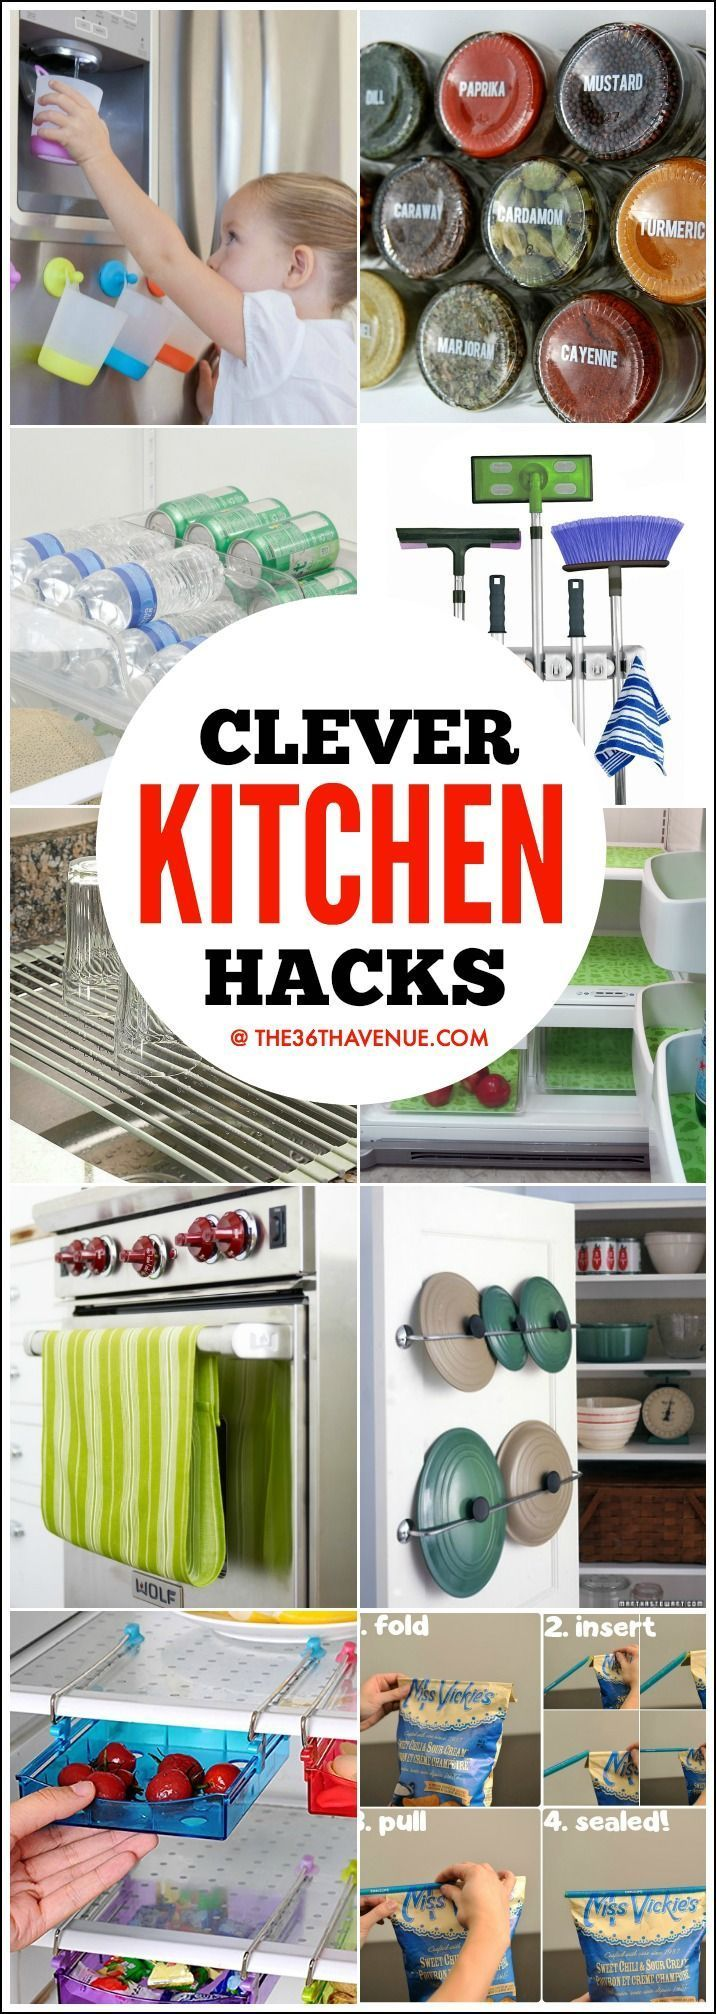 top kitchen hacks and gadgets with images clever kitchen hacks kitchen organization diy on kitchen organization gadgets id=49460